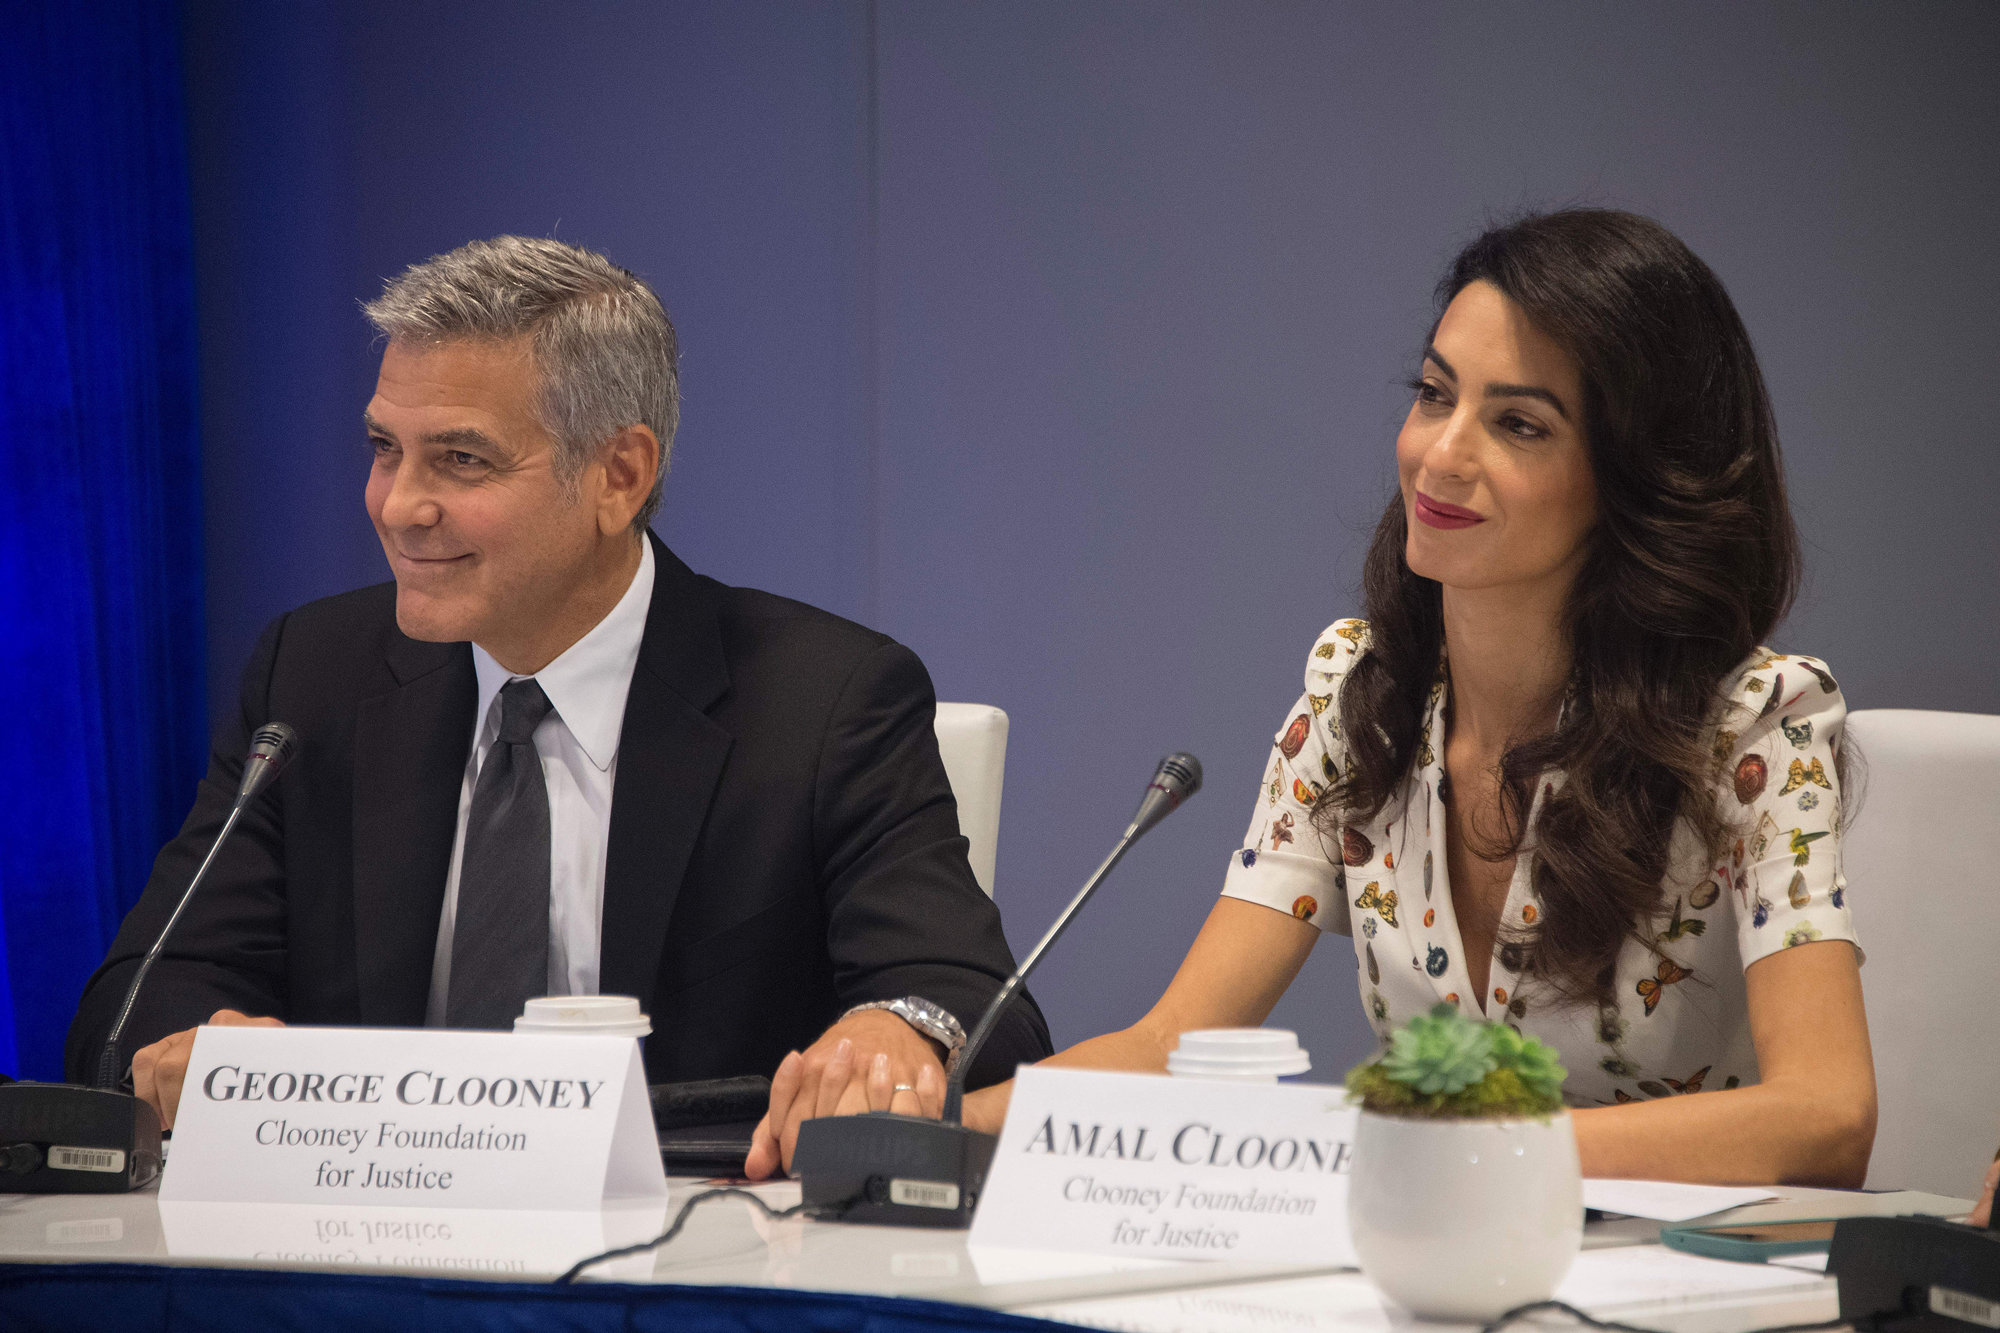 George and Amal Clooney in Butterfly Print Top at UN General